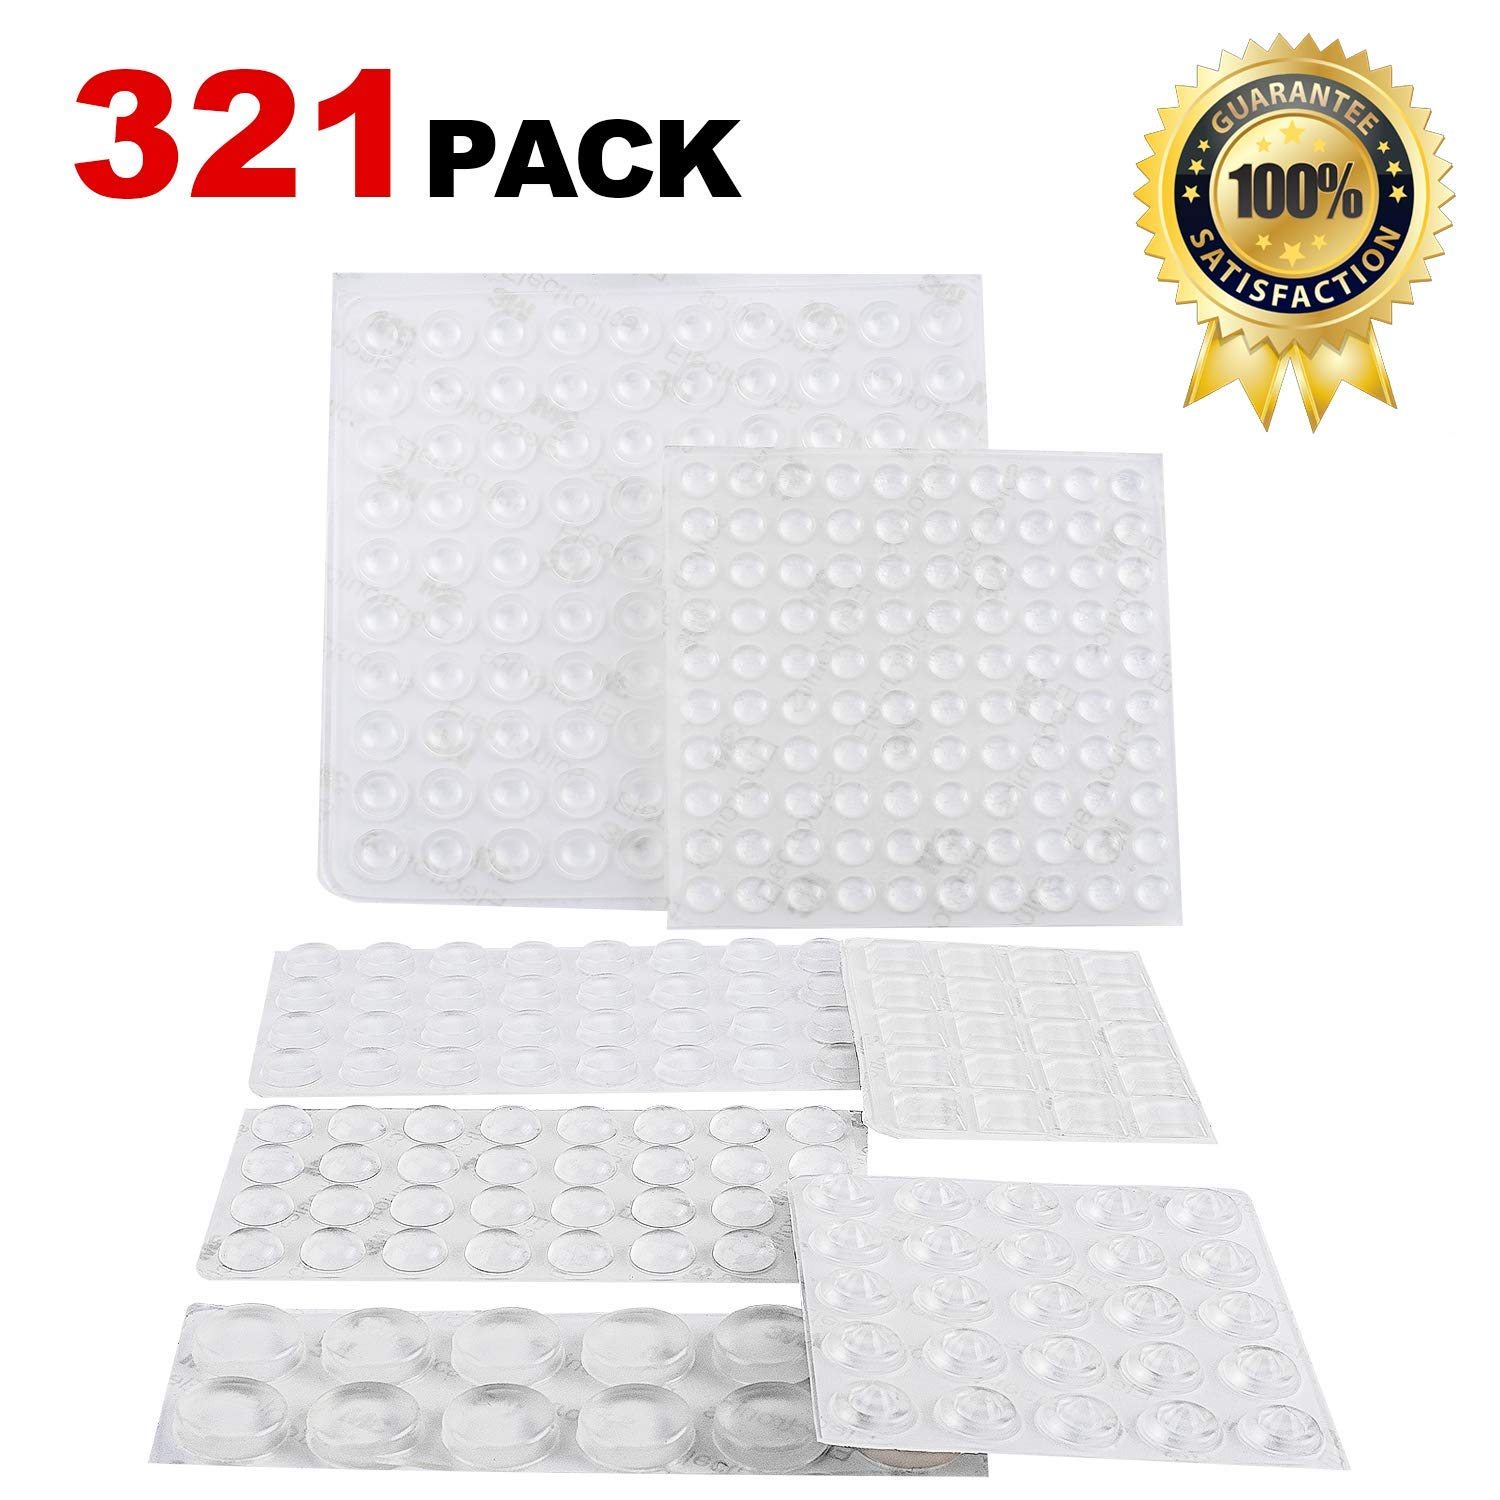 Noise Dampening Cabinet Door Bumpers Pads 321 Pieces Self Adhesive Clear Rubber Feet Transparent Stick Bumpers 7 Shapes for Drawers, Cabinet Doors, Cutting Boards, Picture Frames-OKZEST